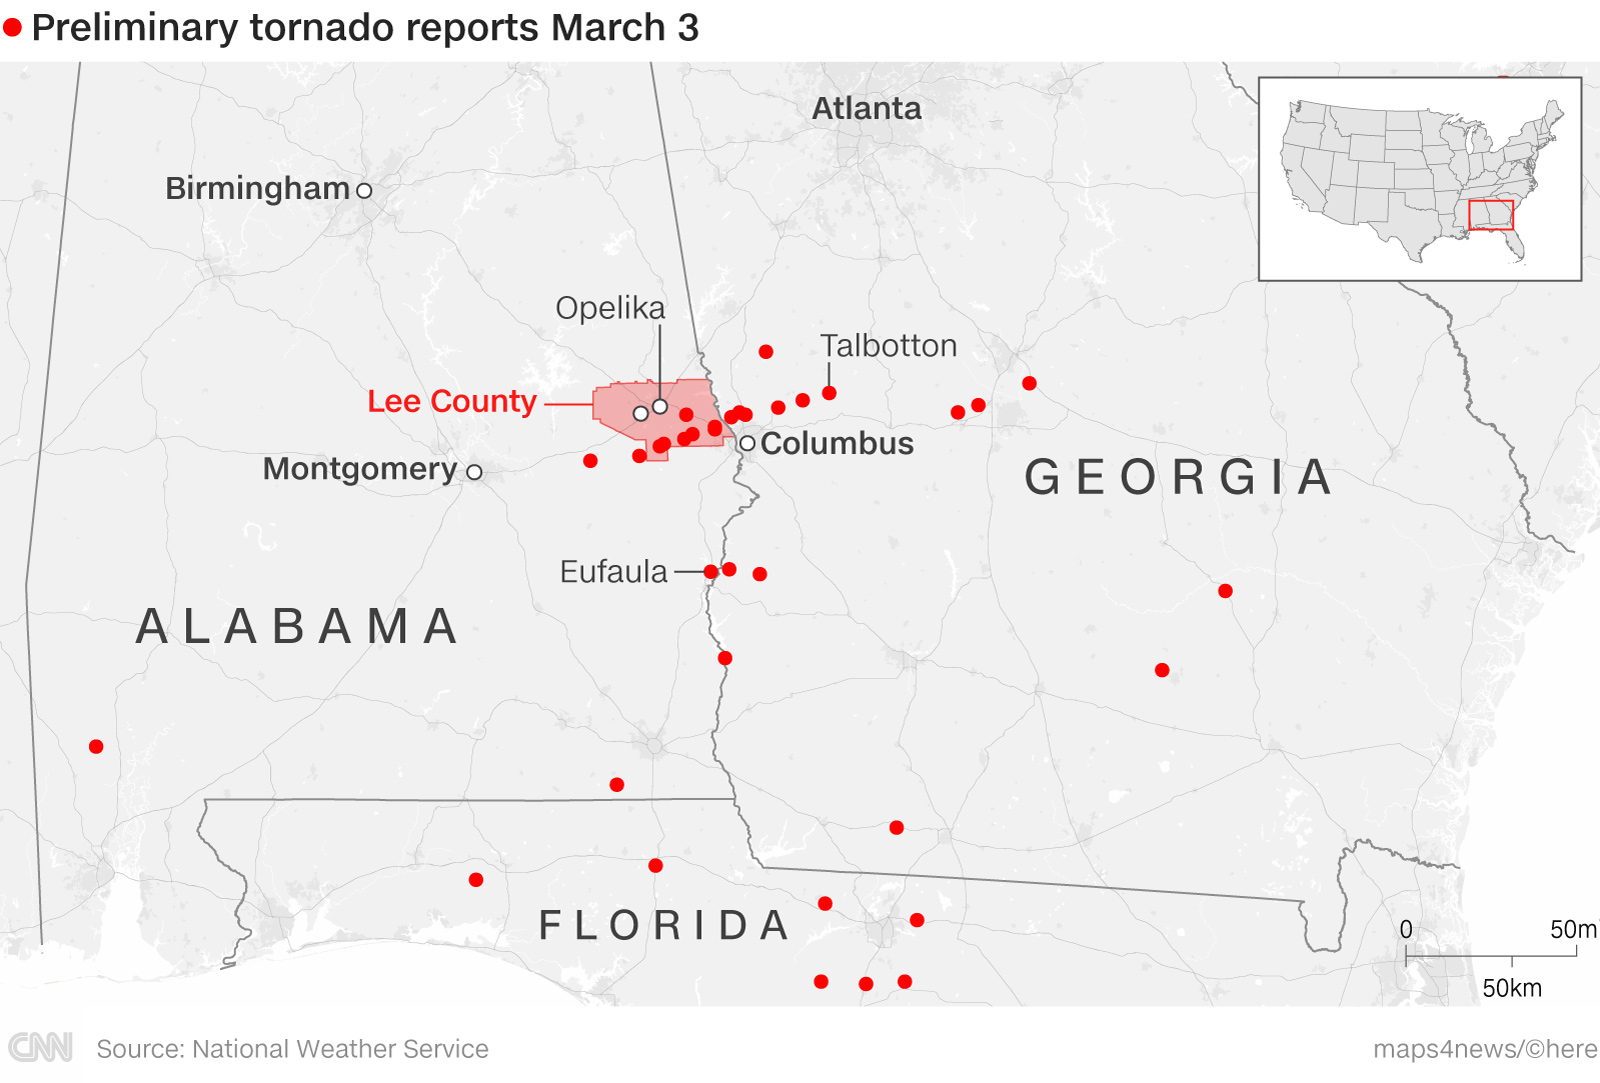 Georgia governor declares state of emergency in 3 counties on georgia rain map, georgia athens map, georgia regions map printable, georgia water map, united states wildfire map, georgia tornadoes, georgia militia, georgia state map, georgia hurricane map, georgia seismic map, georgia flooding map, georgia drought map, georgia piedmont map, georgia temperature map, georgia evacuation map, georgia liberty map, georgia storm soccer, glynn county georgia map, georgia plantations map, georgia topo map,